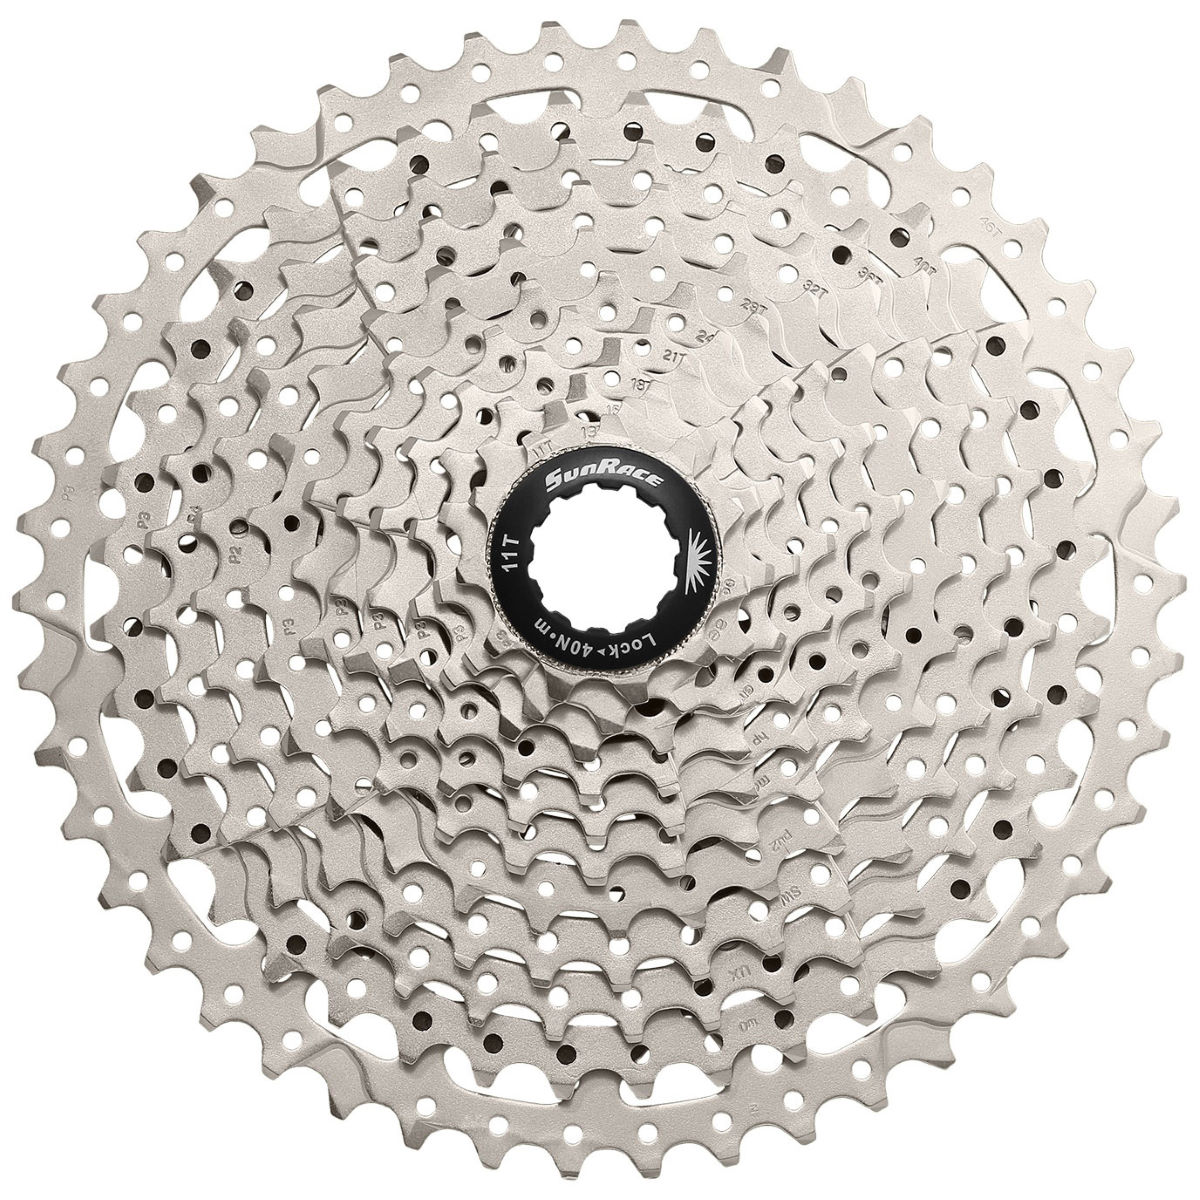 SunRace MS8 Wide-Ratio Cassette (11 Speed) - Cassettes